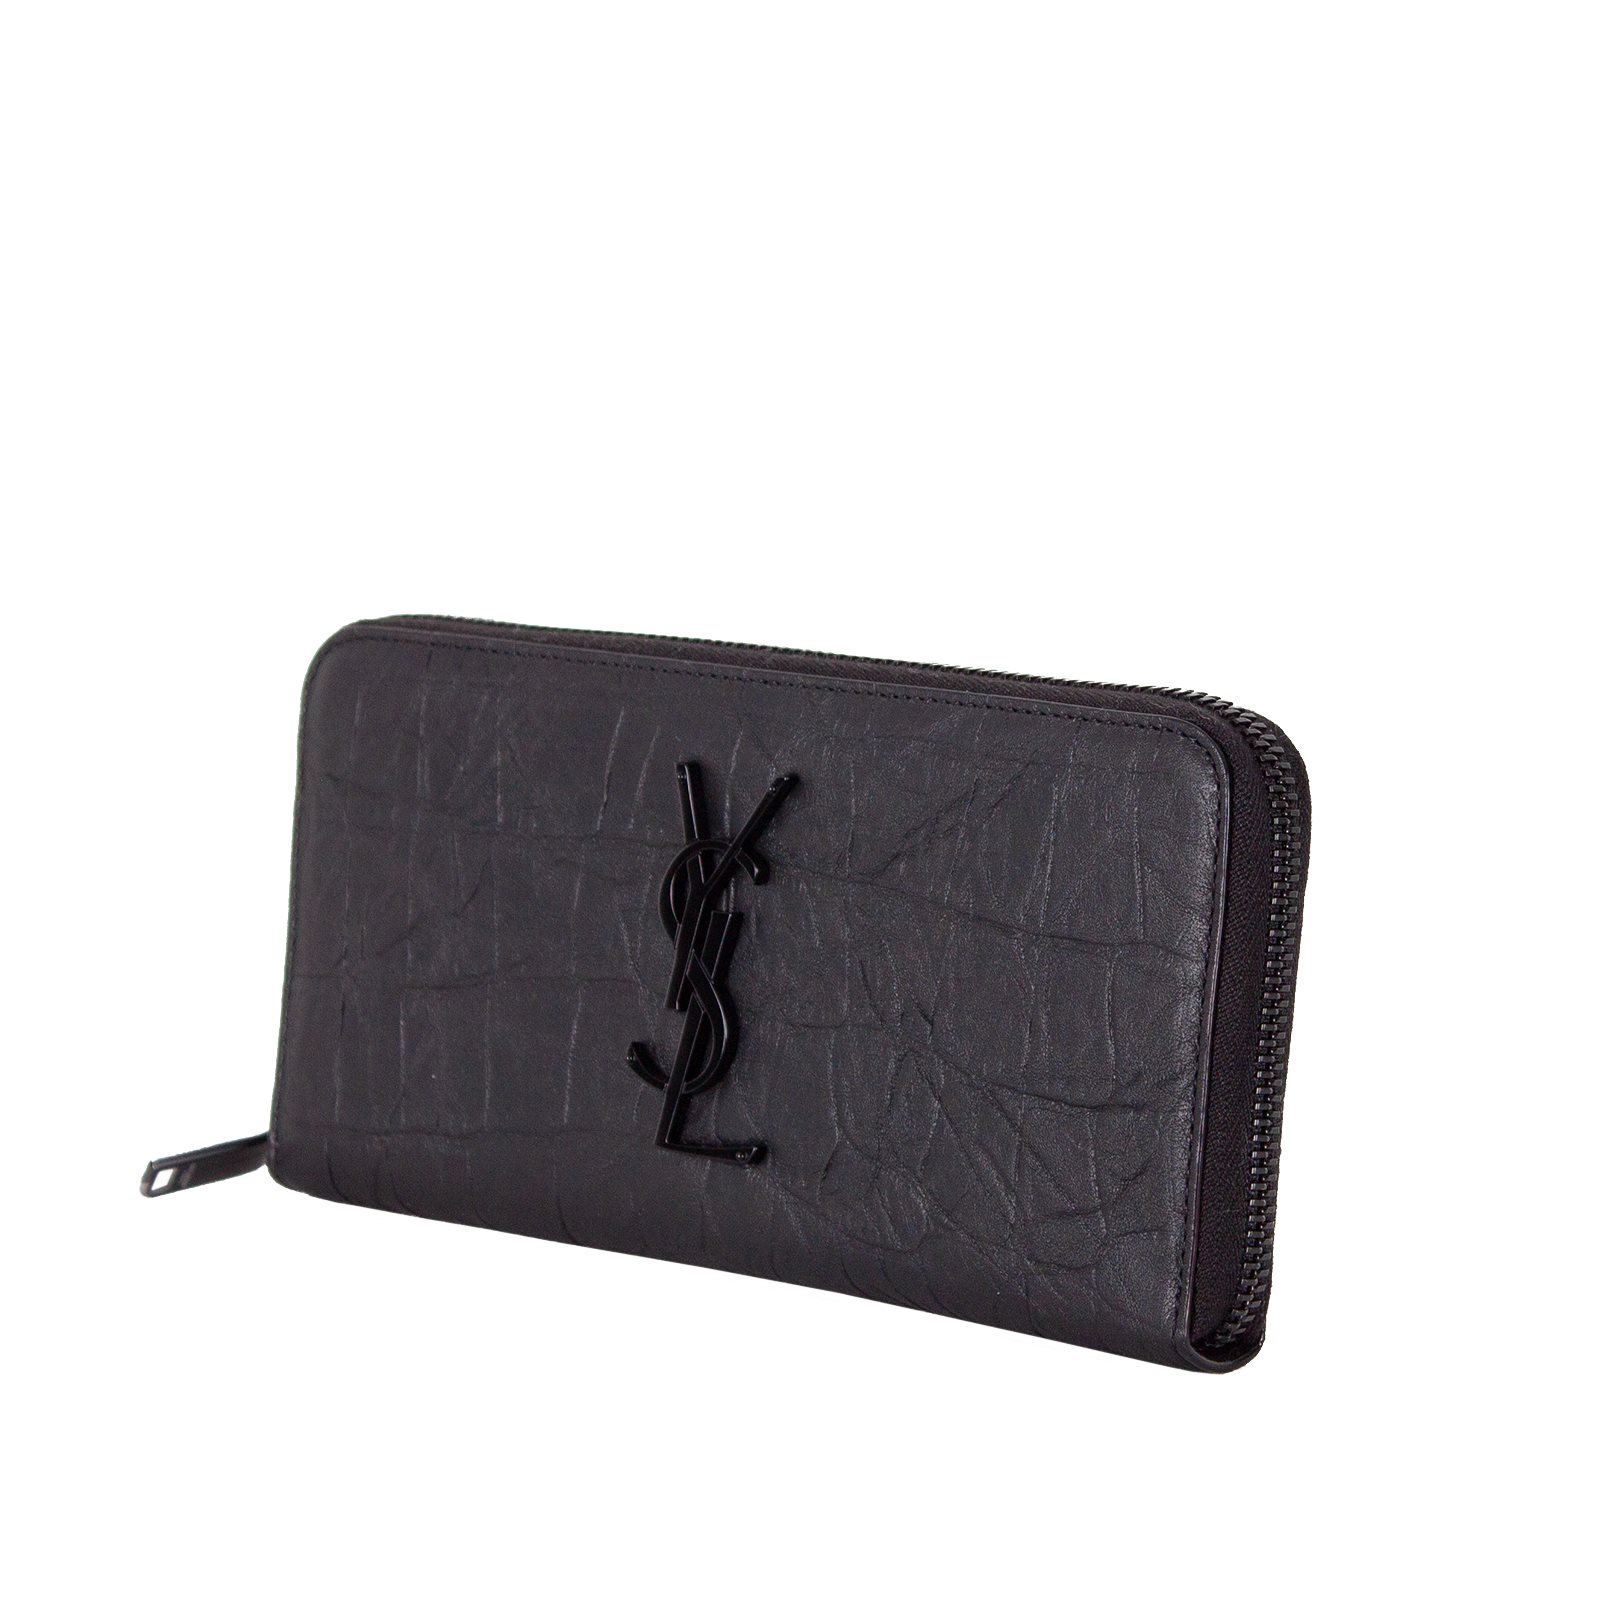 ZIPPED WALLET 2